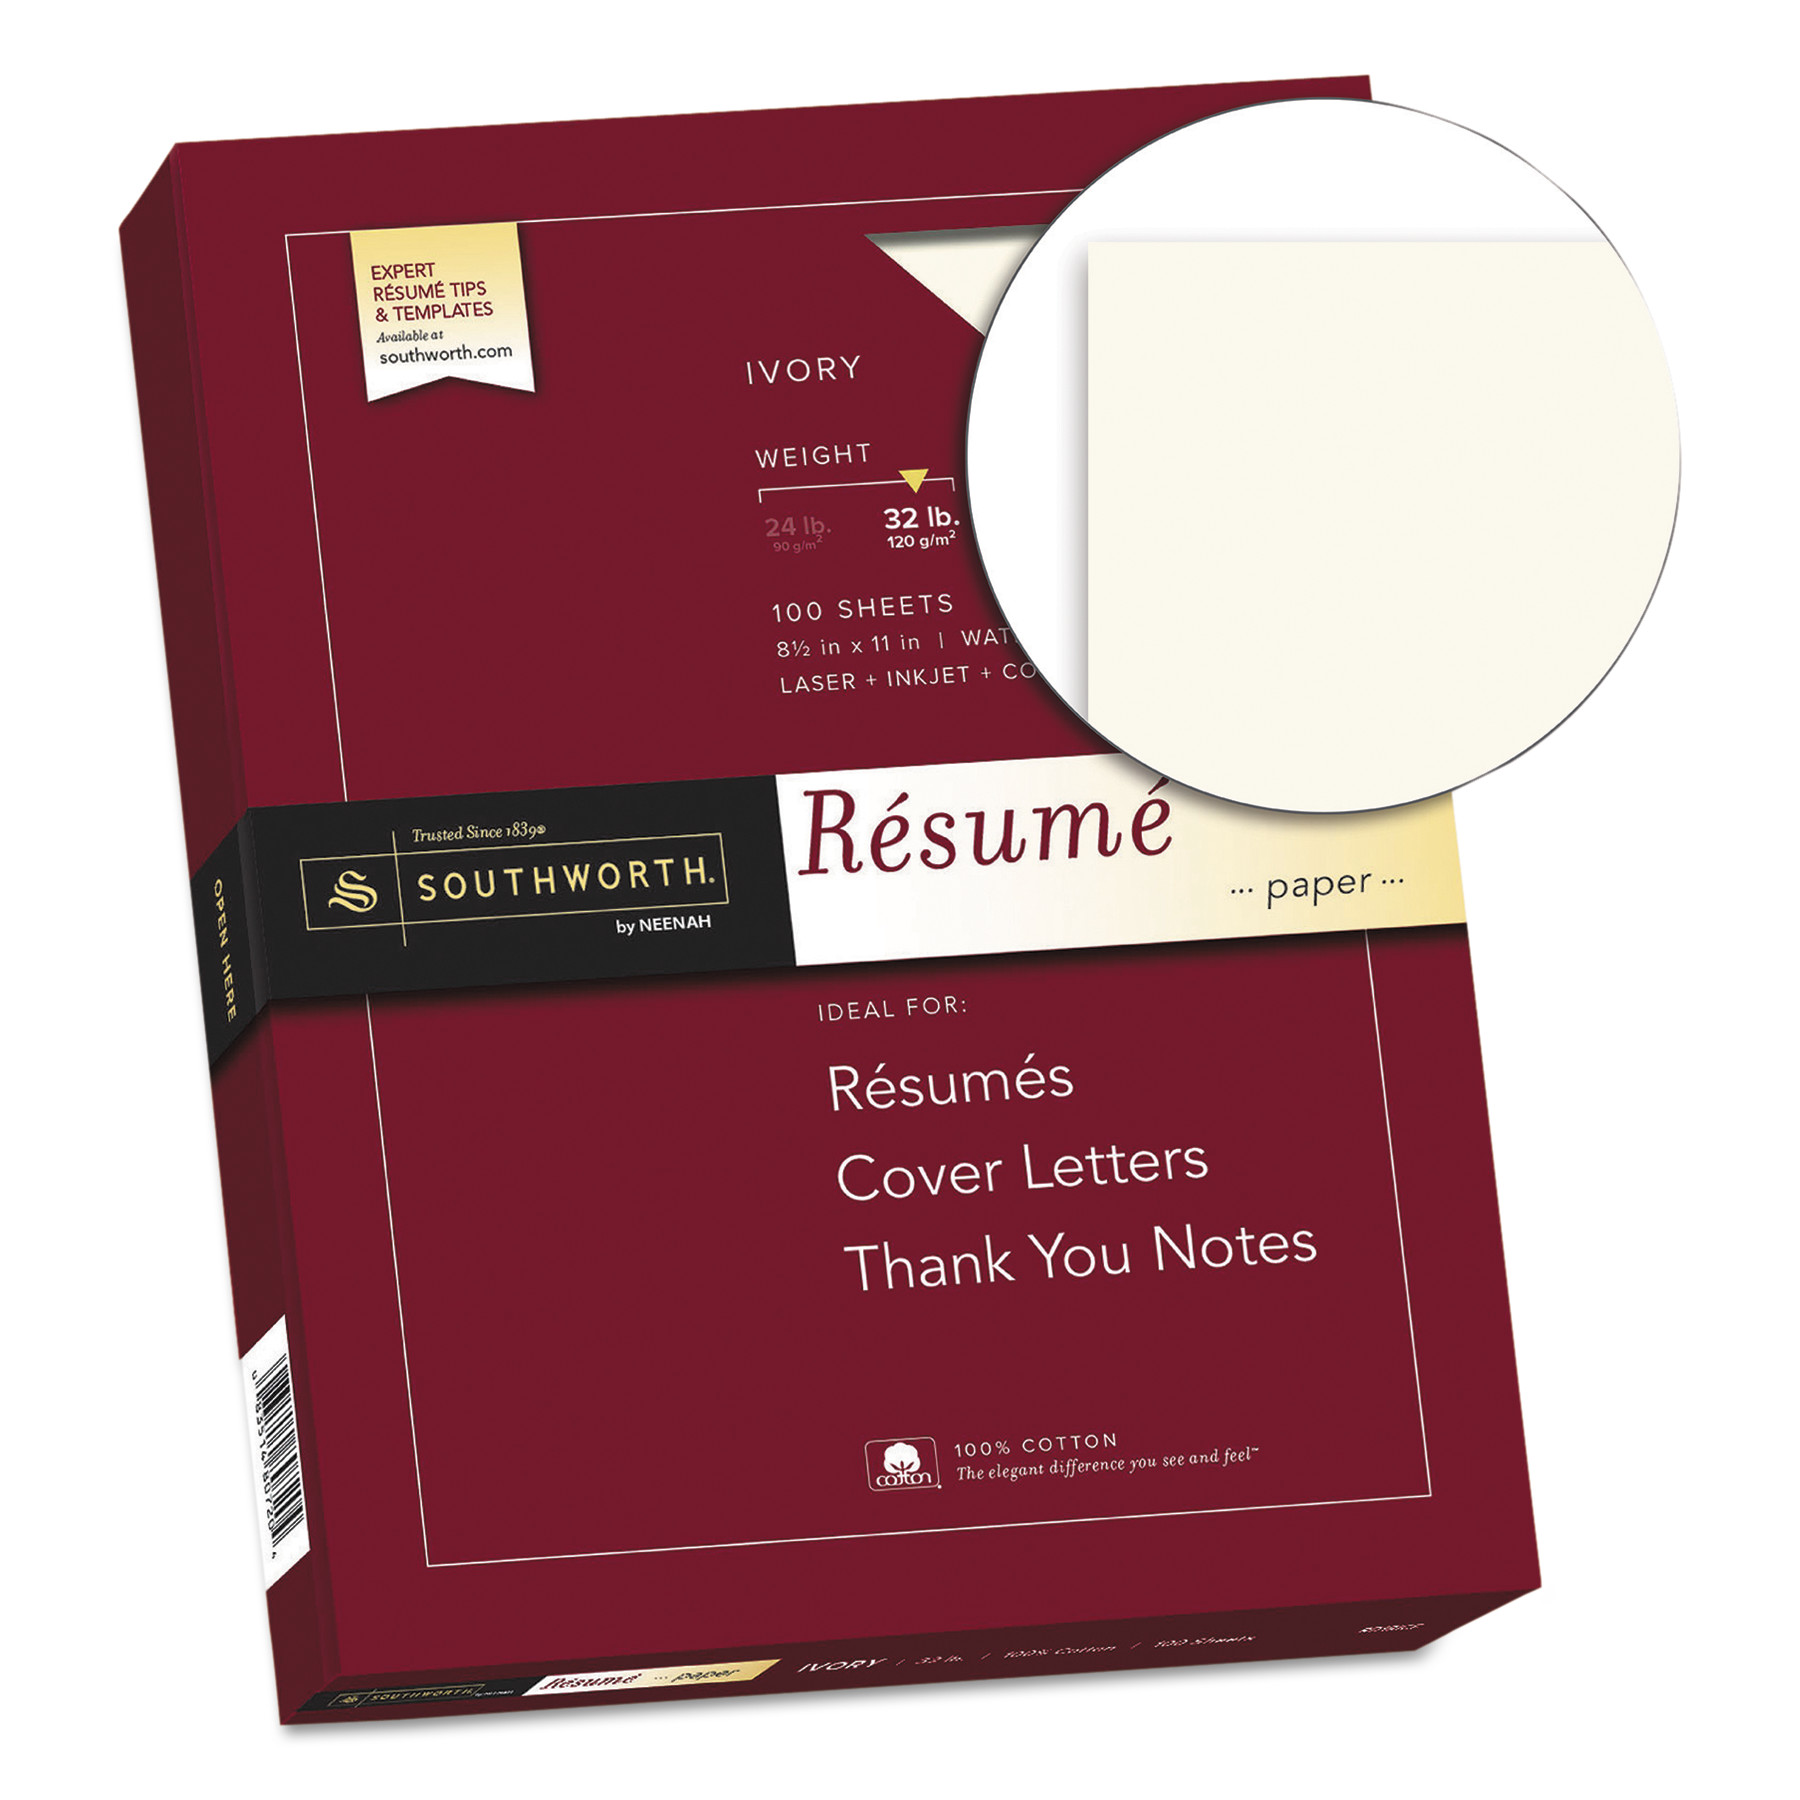 resume Southworth Resume Paper southworth 100 cotton resume paper 32lb 8 12 x 11 ivory wove sheets walmart com